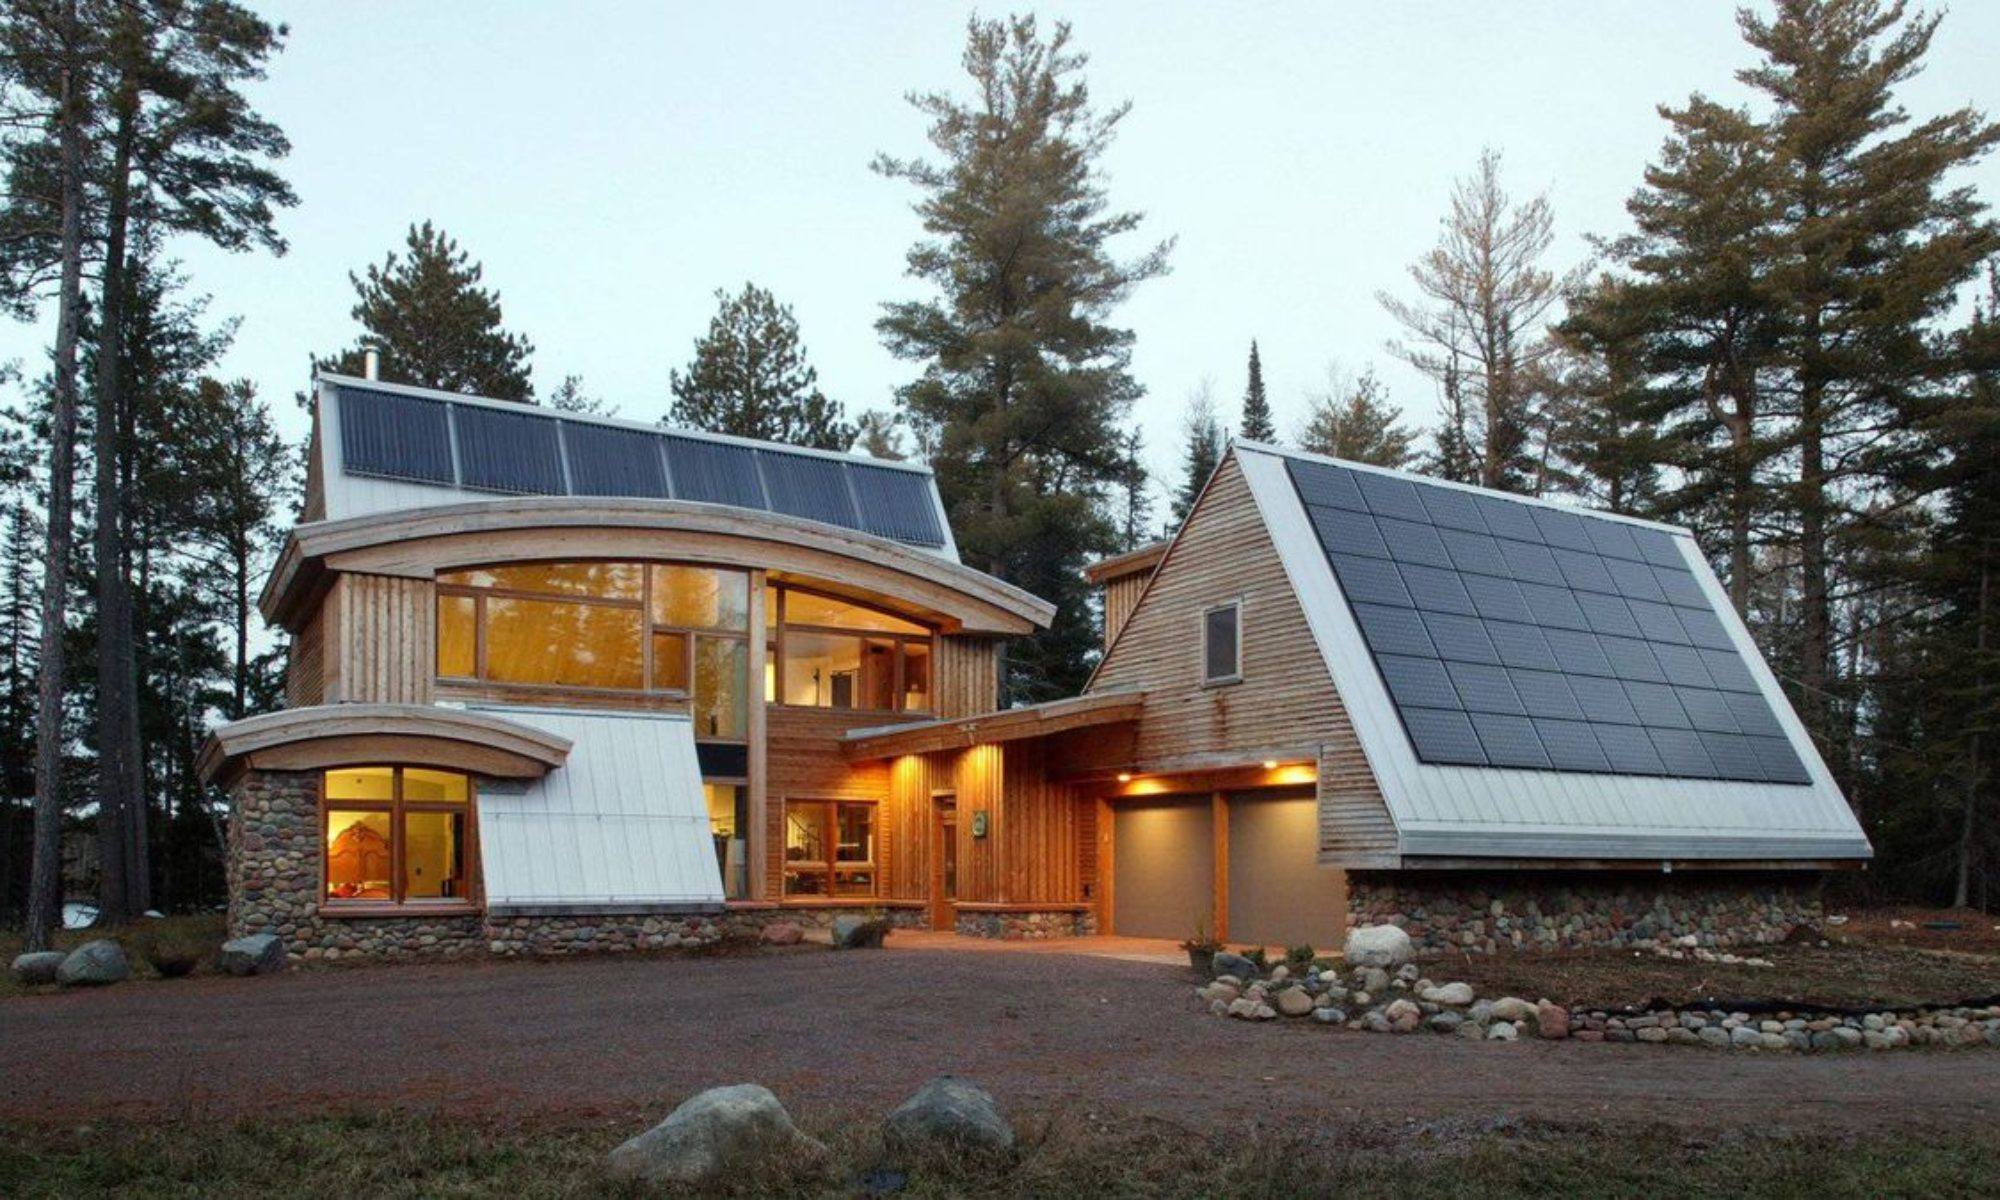 cropped 67D4OVNFDNEGTLW3UBF7S3QSKQ - What's a Passive House? And How Can I Enhance My Home's Efficiency?